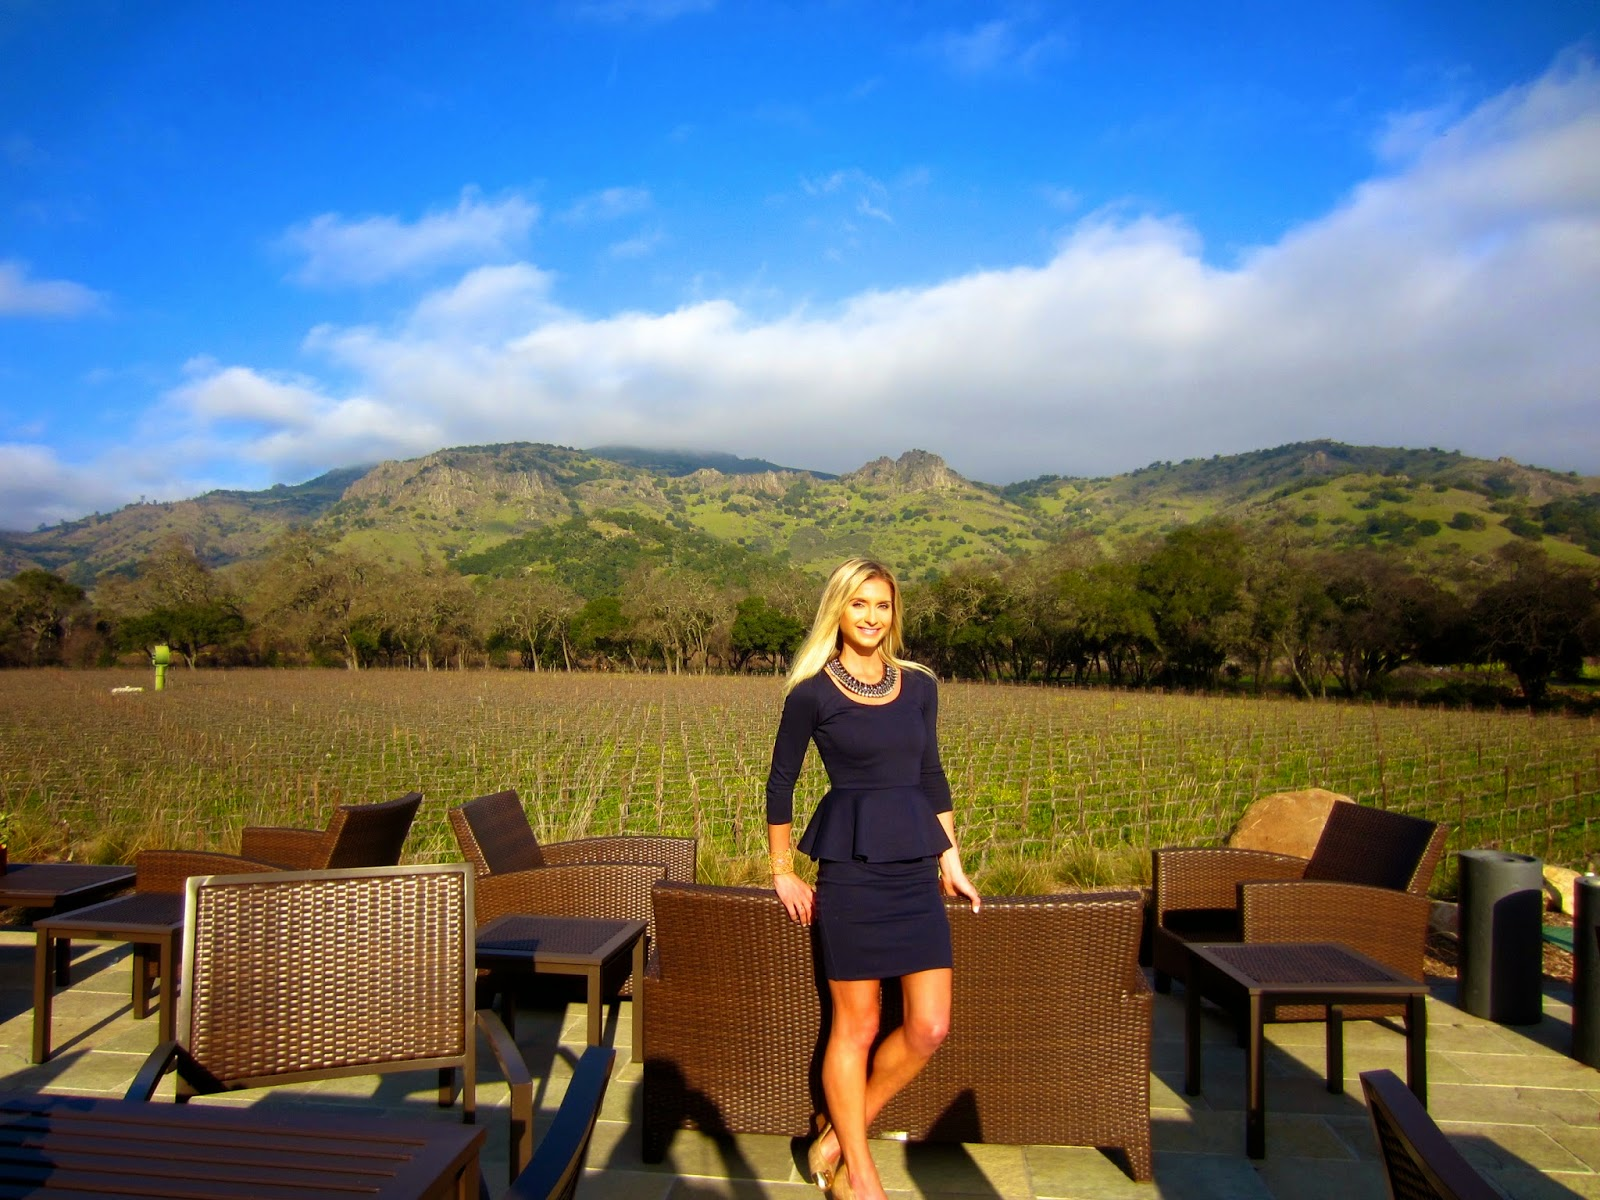 Whatu0027s New Despite change in ownership and winemakers one of Napau0027s most famous and celebrated wineries Stagu0027s Leap keeps getting better with age. & Decantress Wine Diary: No Bottleshock u2013 Stagu0027s Leap Cellars Opens ...